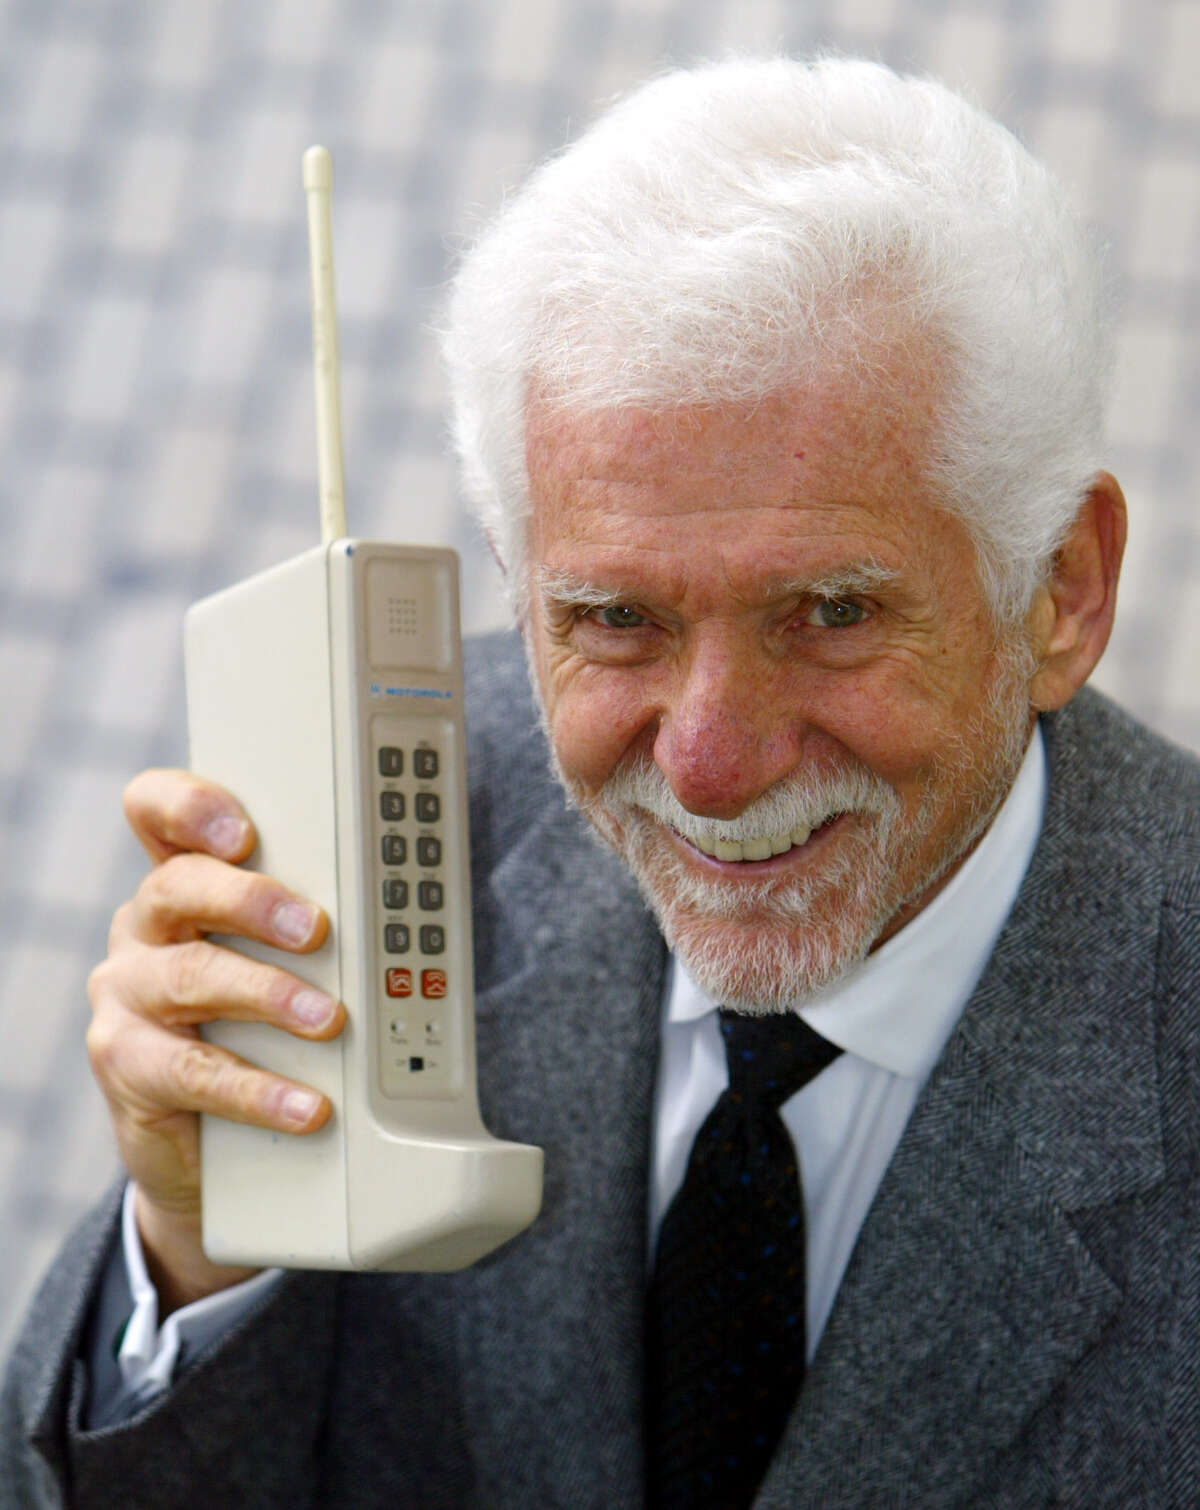 History of the cell phone Martin Cooper, chairman and CEO of ArrayComm, holds a Motorola DynaTAC, a 1973 prototype of the first handheld cellular telephone in San Francisco, Wednesday April 2, 2003. (AP)